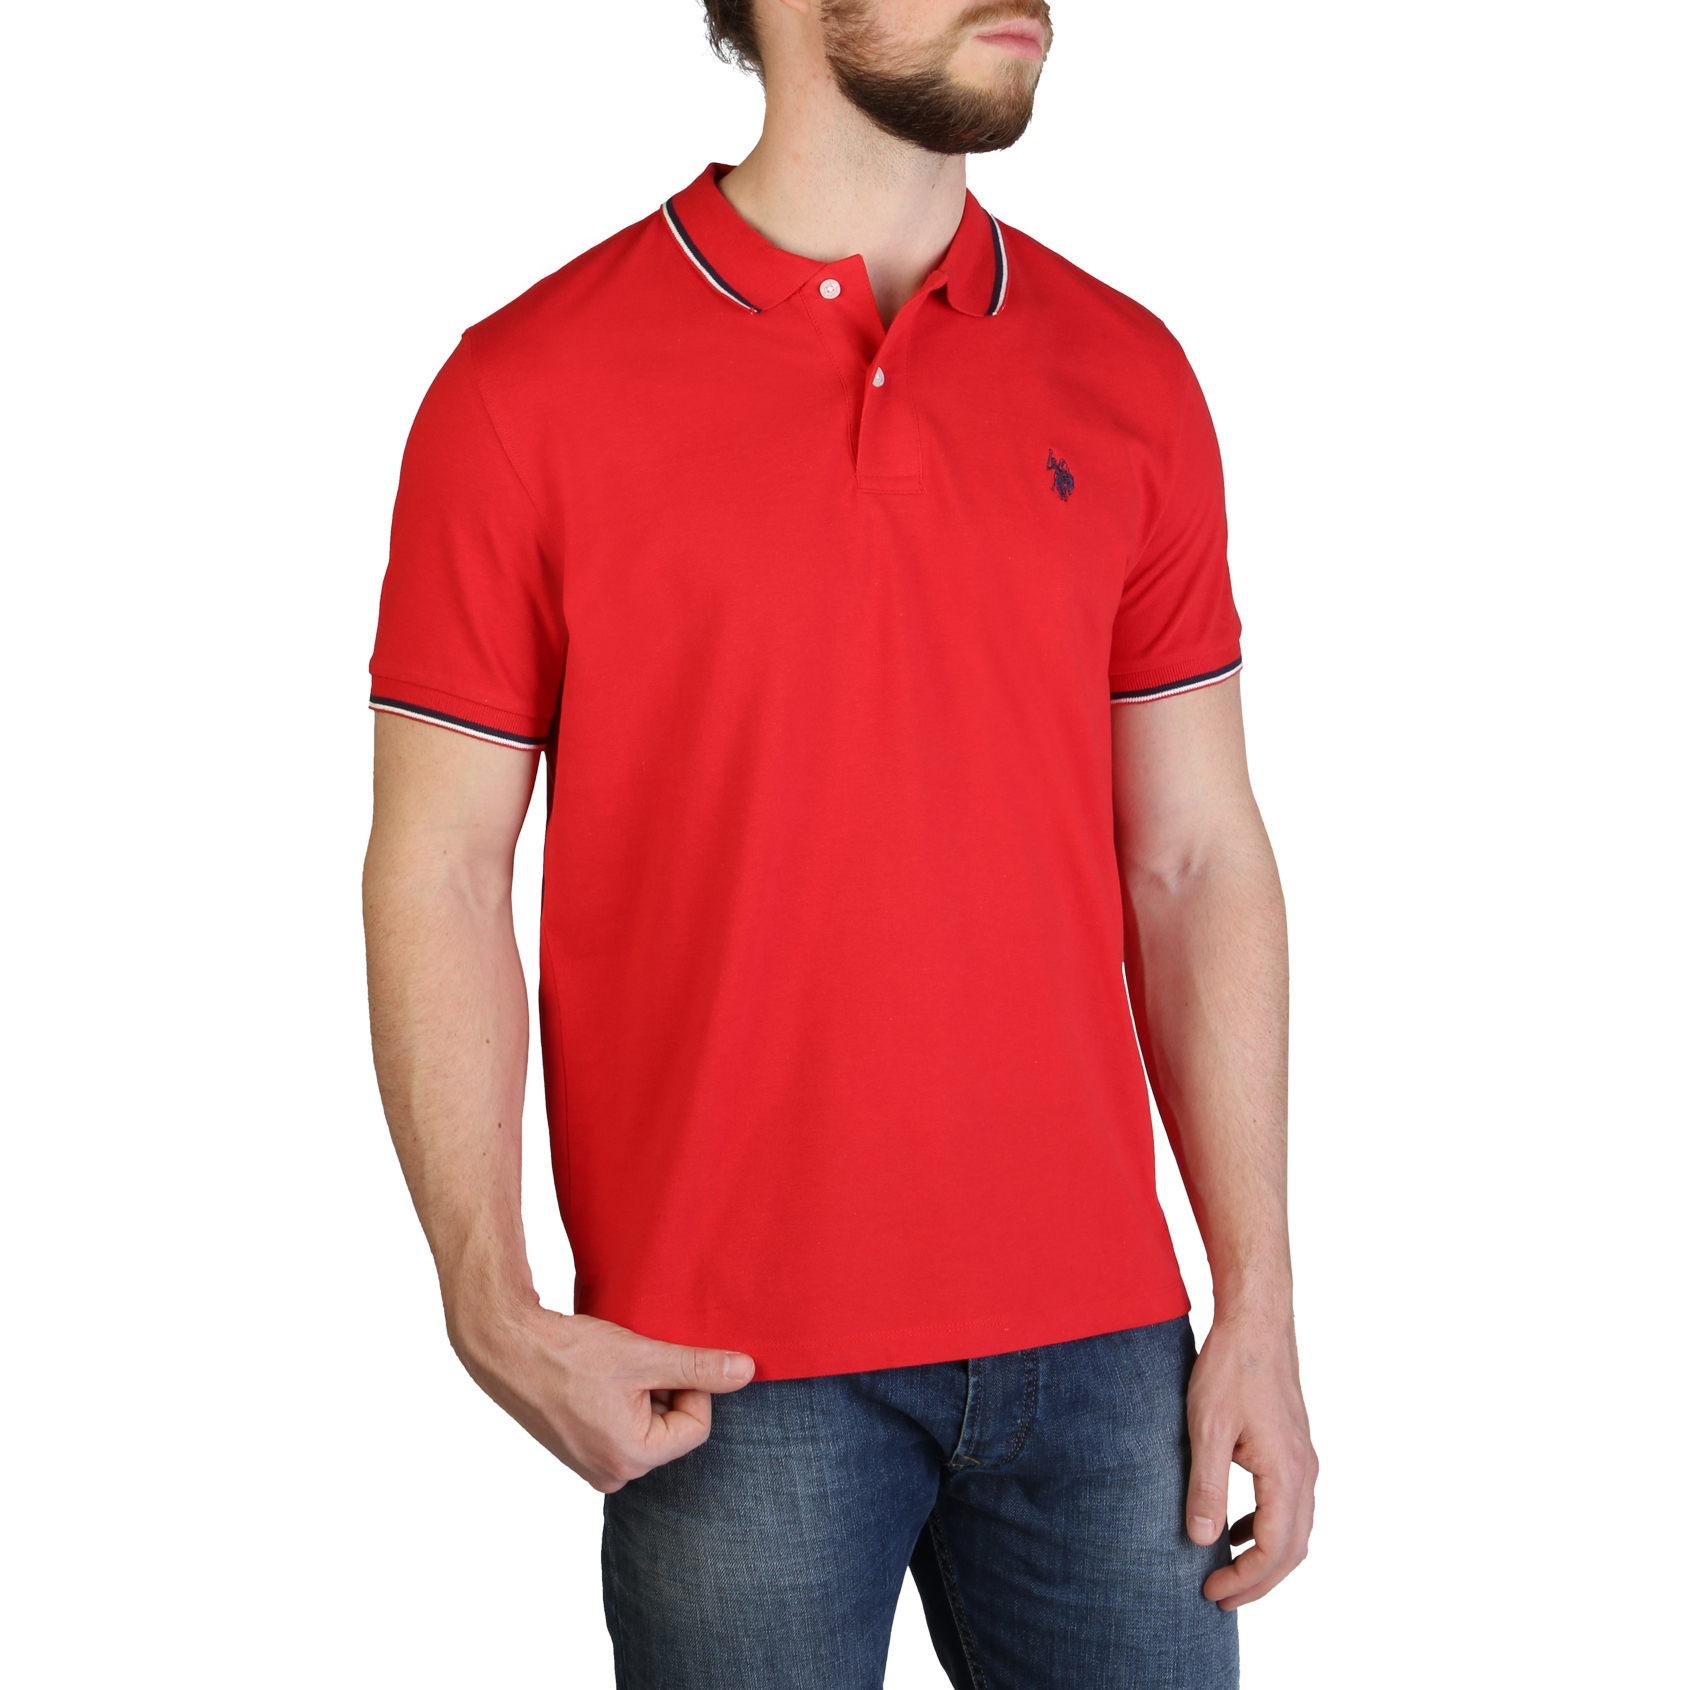 U.S. Polo Assn. - 59619 - Red